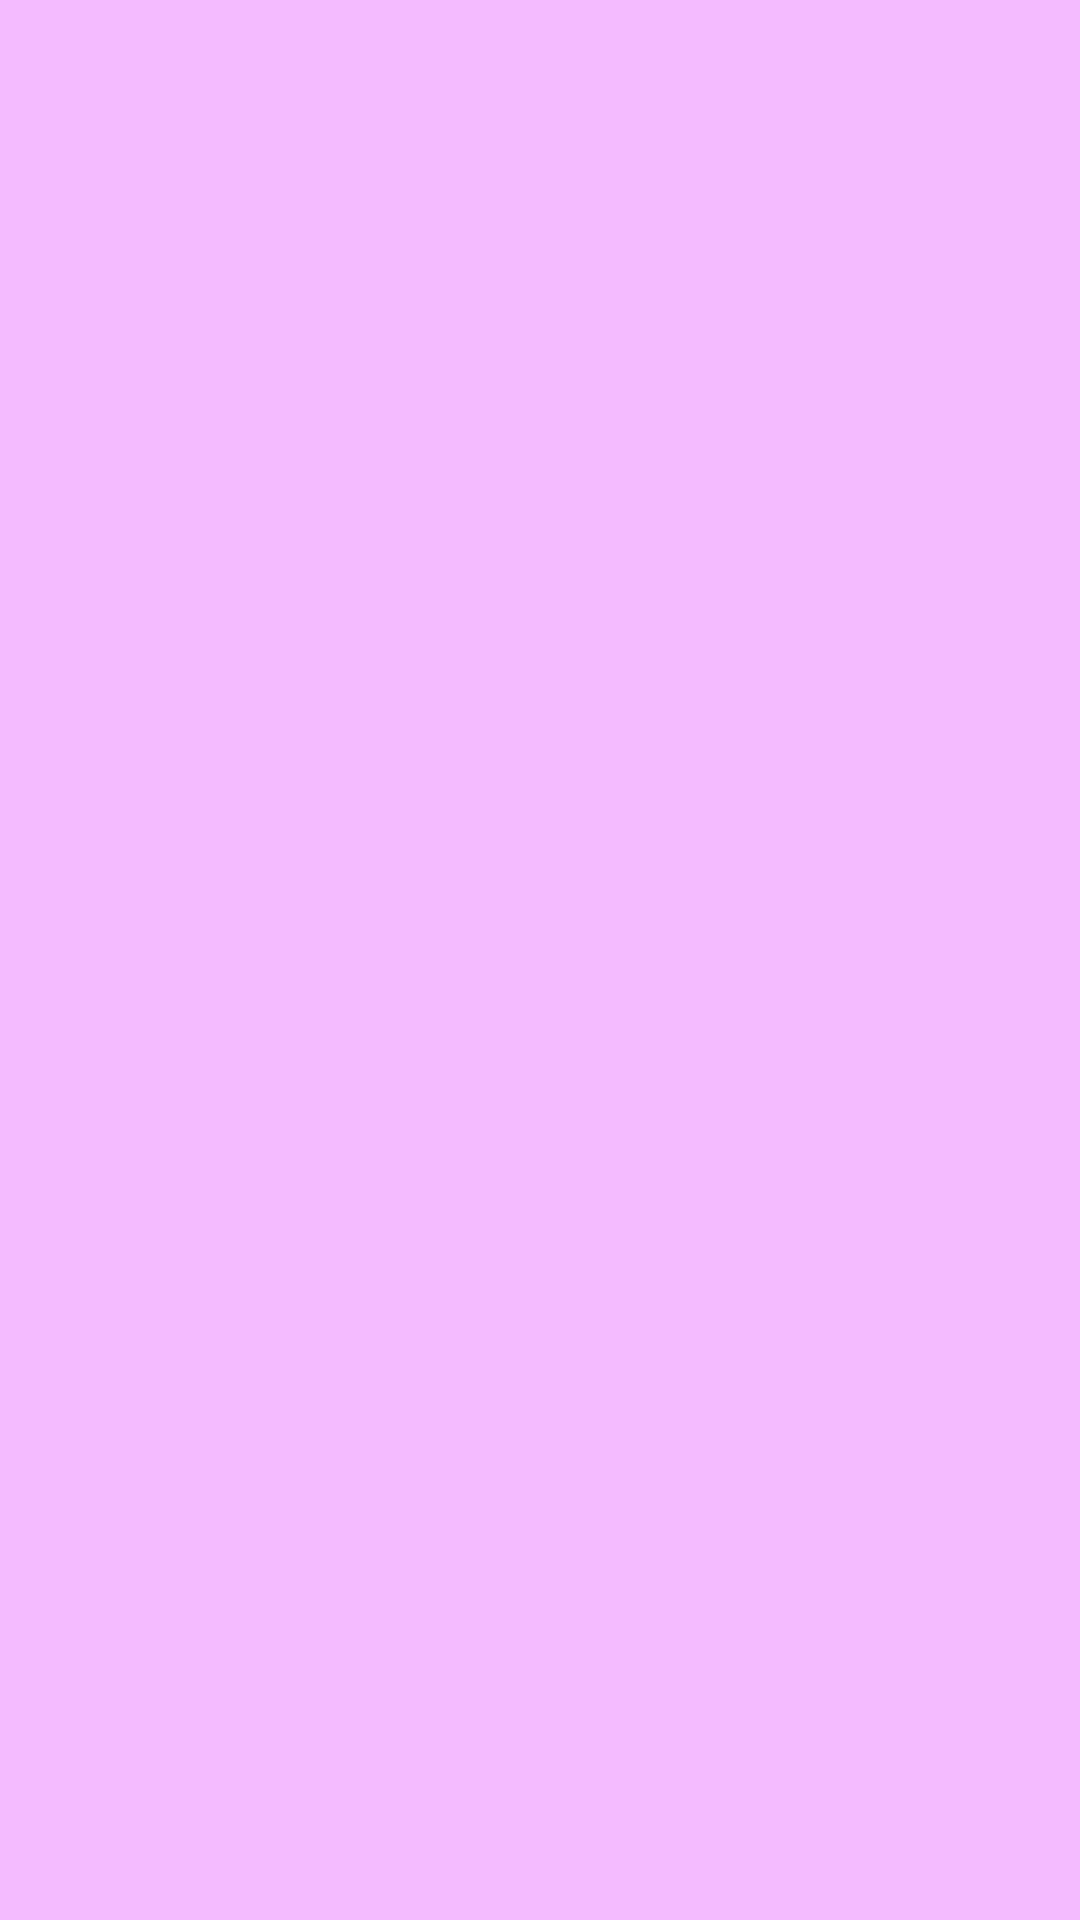 1080x1920 Brilliant Lavender Solid Color Background